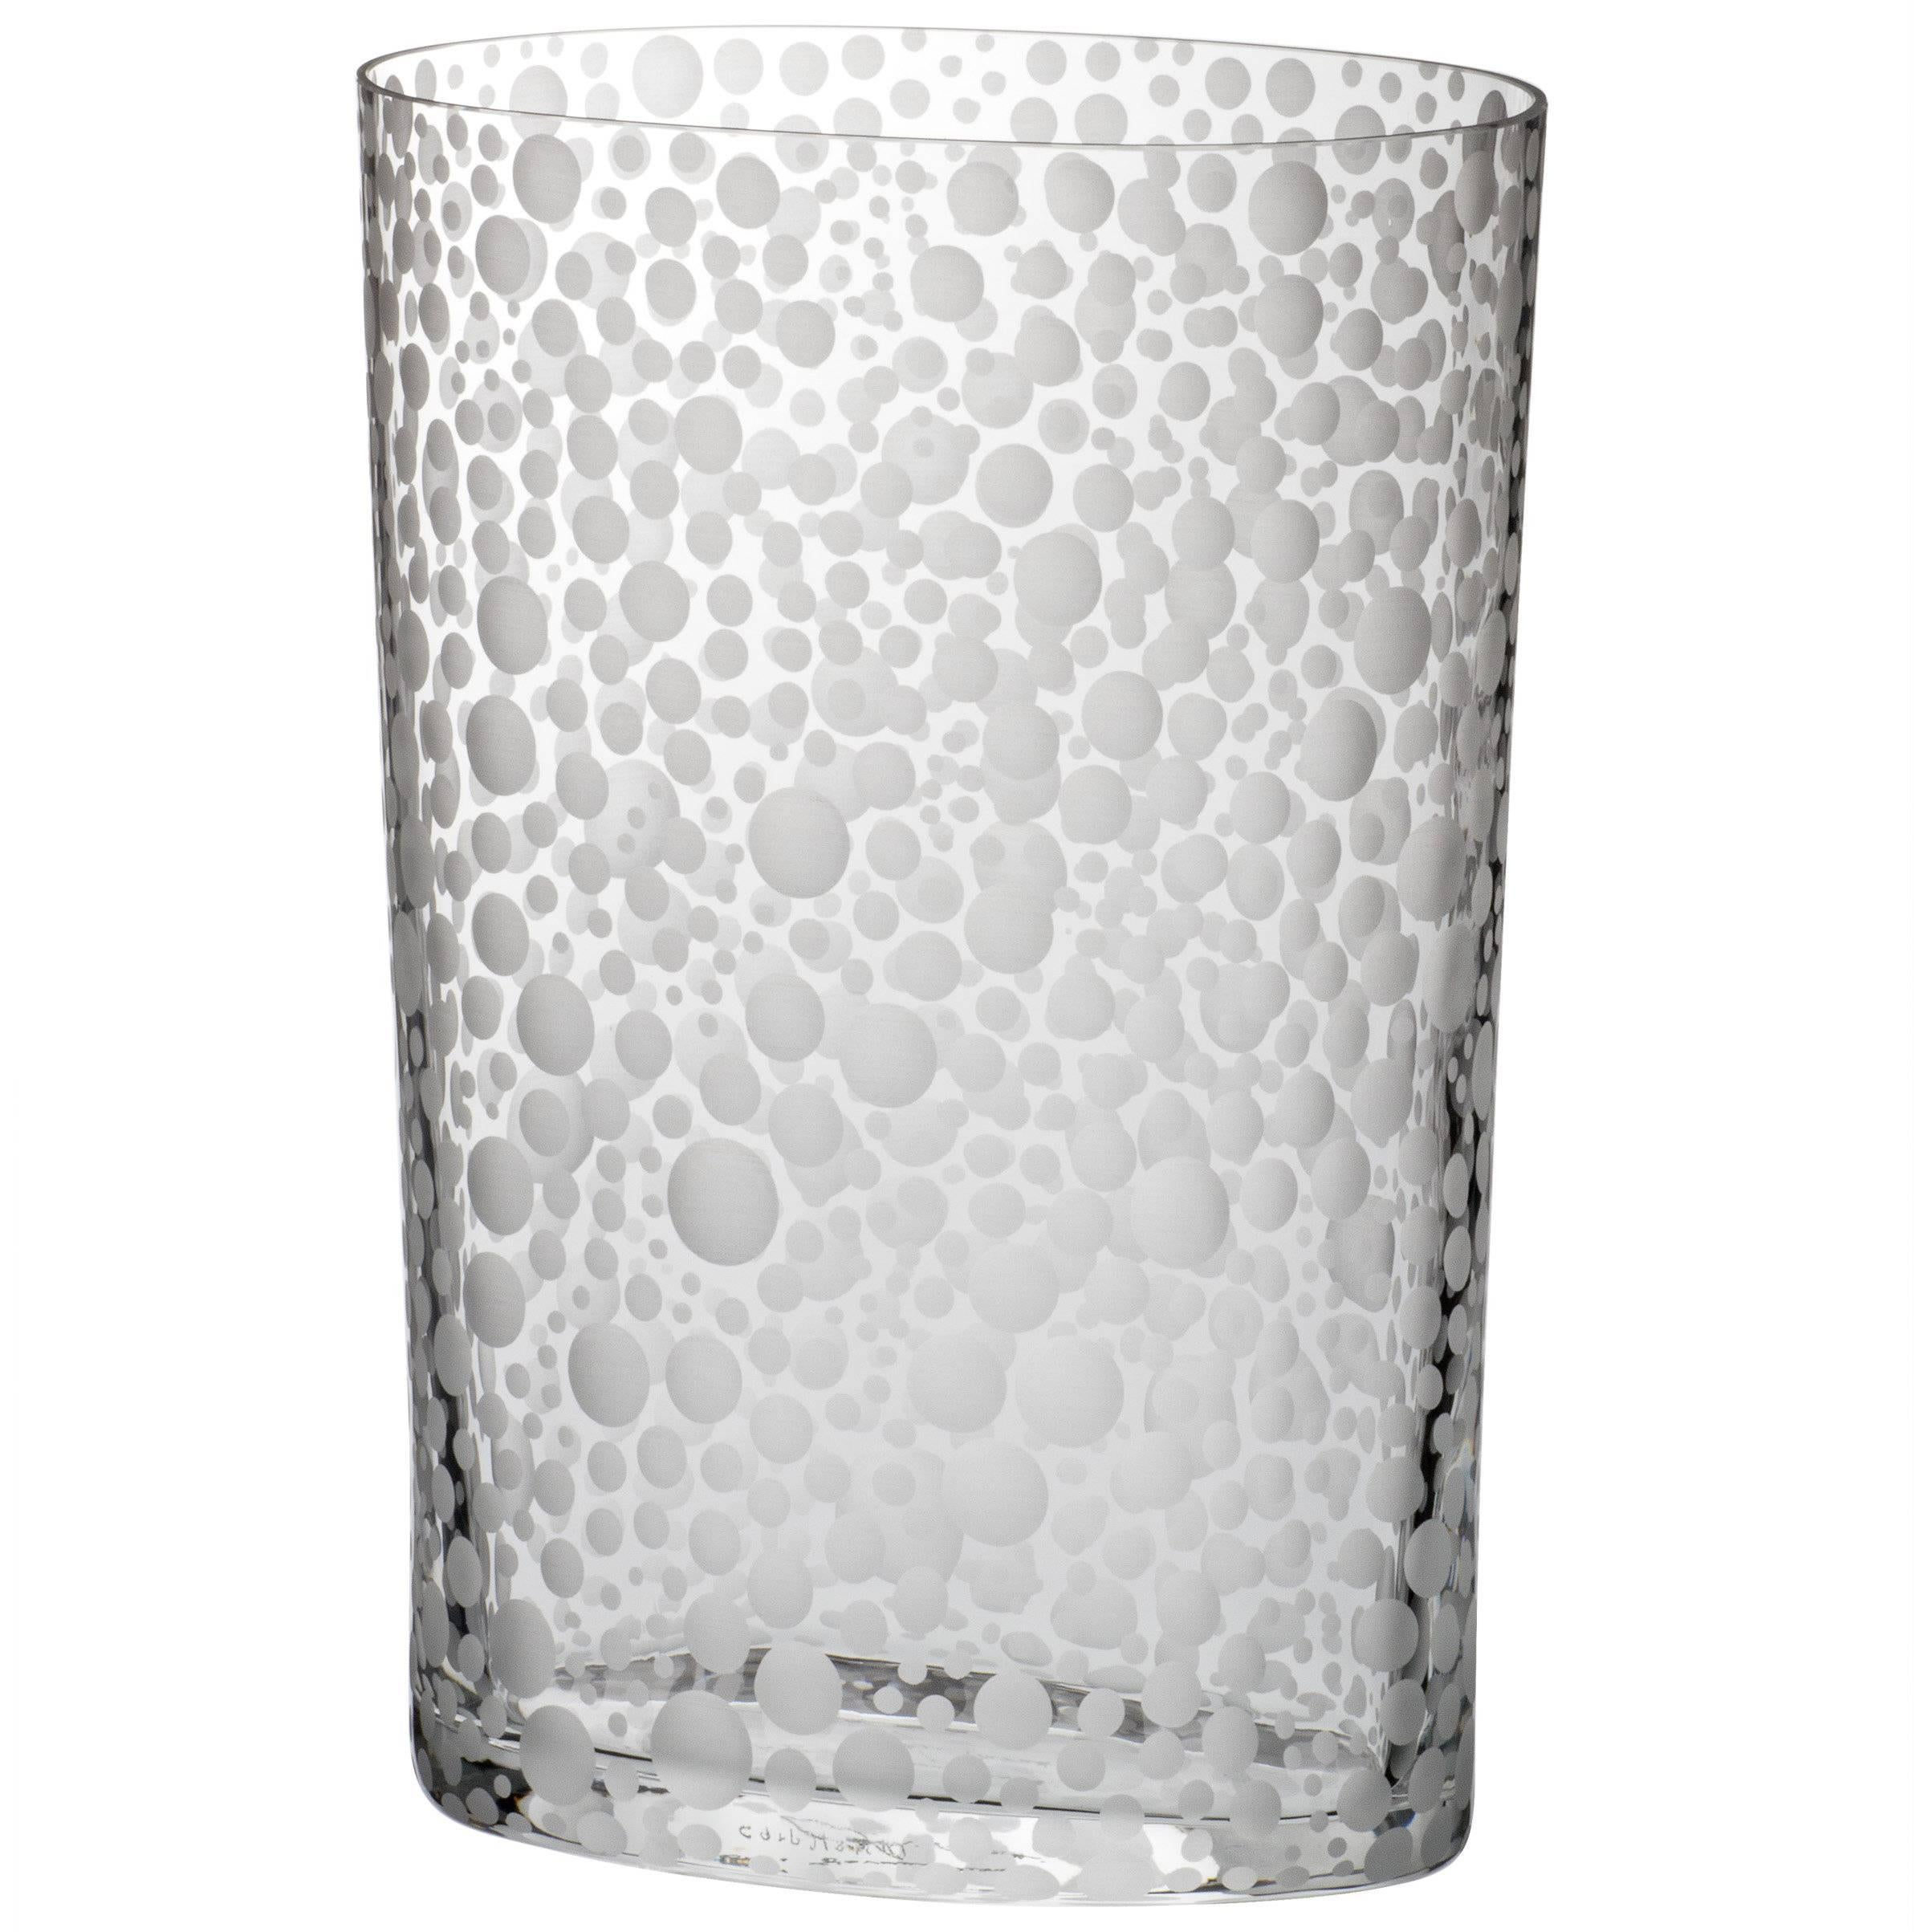 Millebolle Carlo Moretti Contemporary Murano Clear Glass Hand Etched Vase